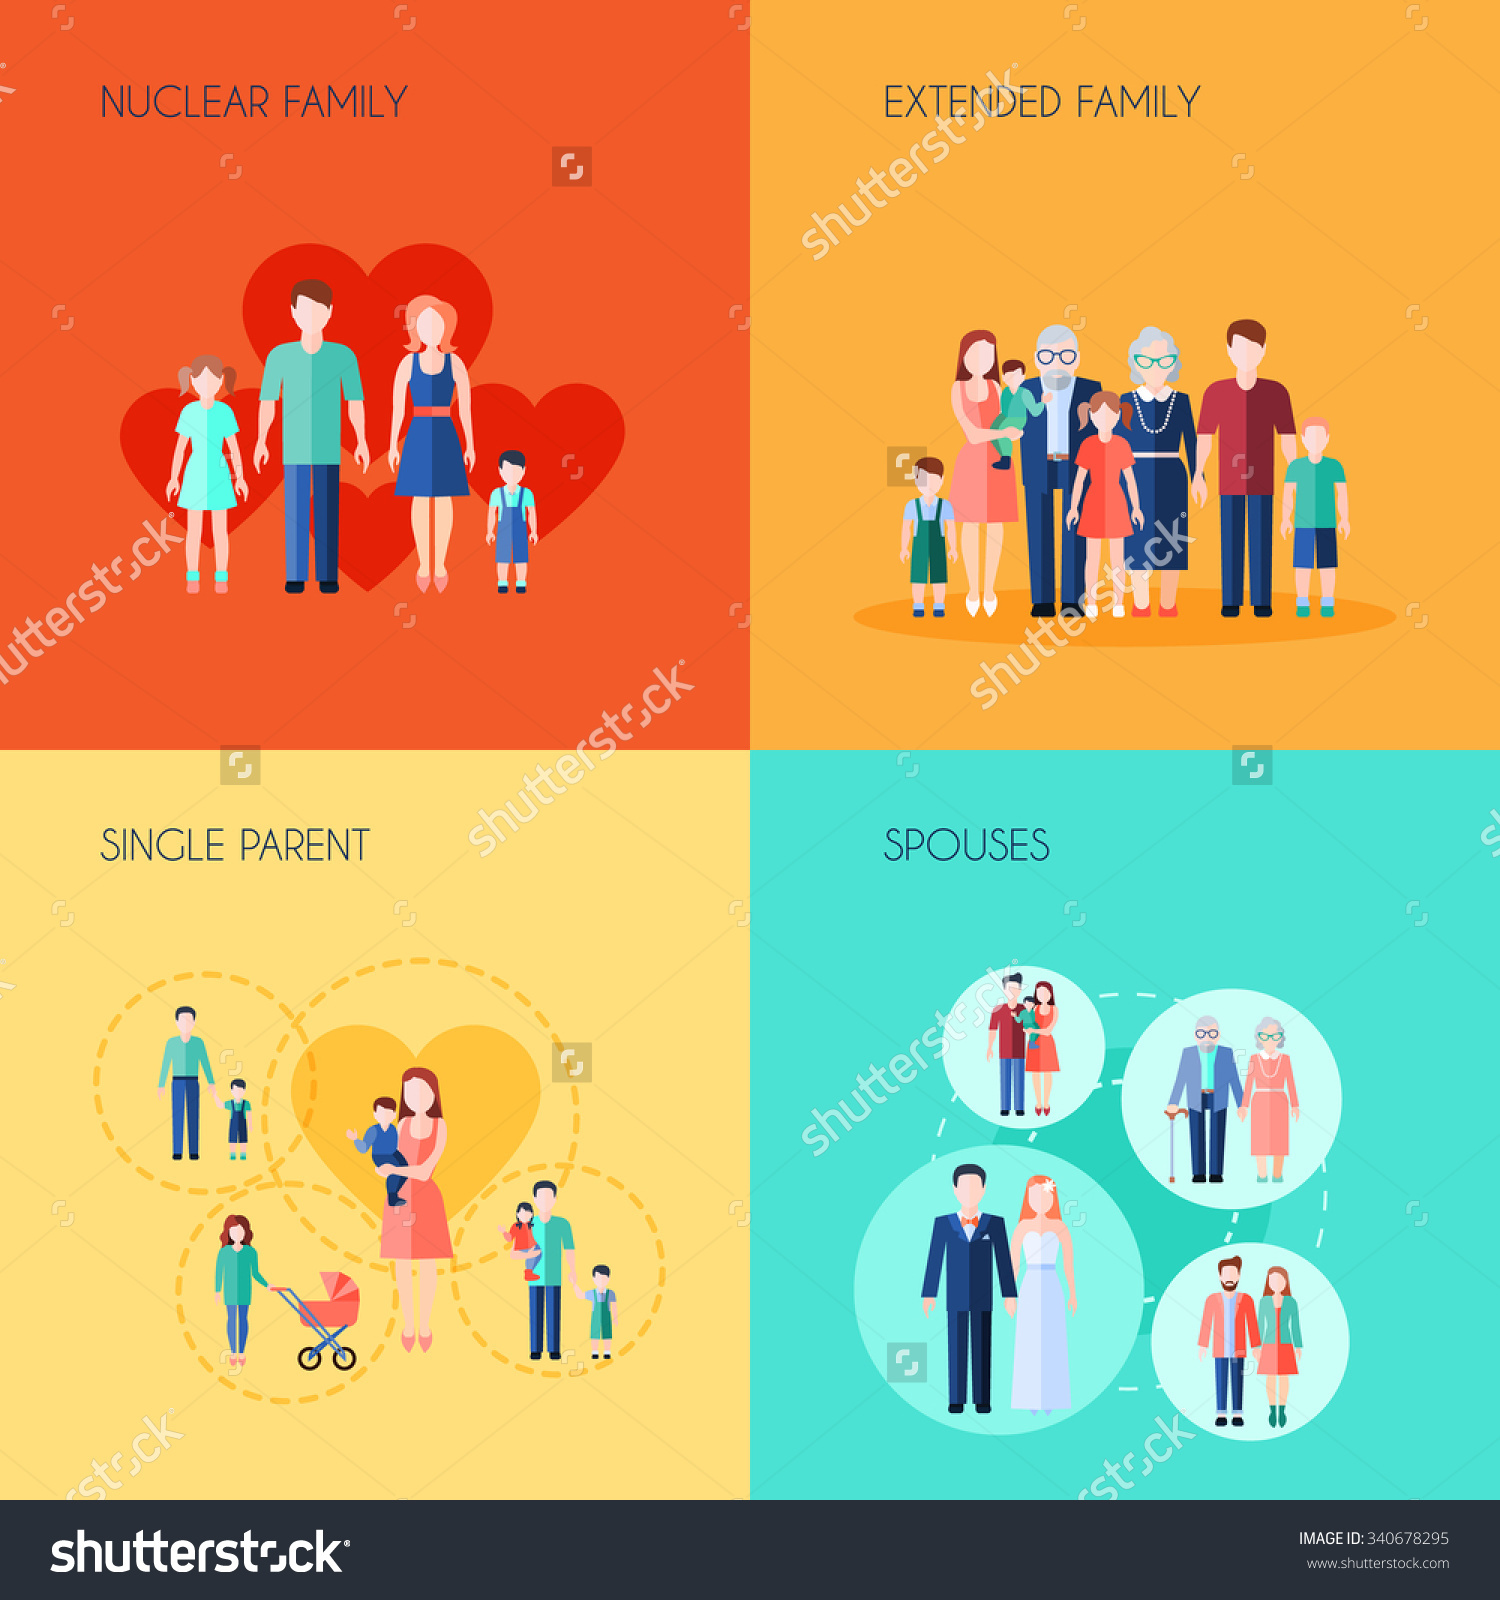 nuclear and extended family essay Extended families, nuclear families, single parent  to be a child in an extended family  this separation of an extended family into many smaller nuclear.